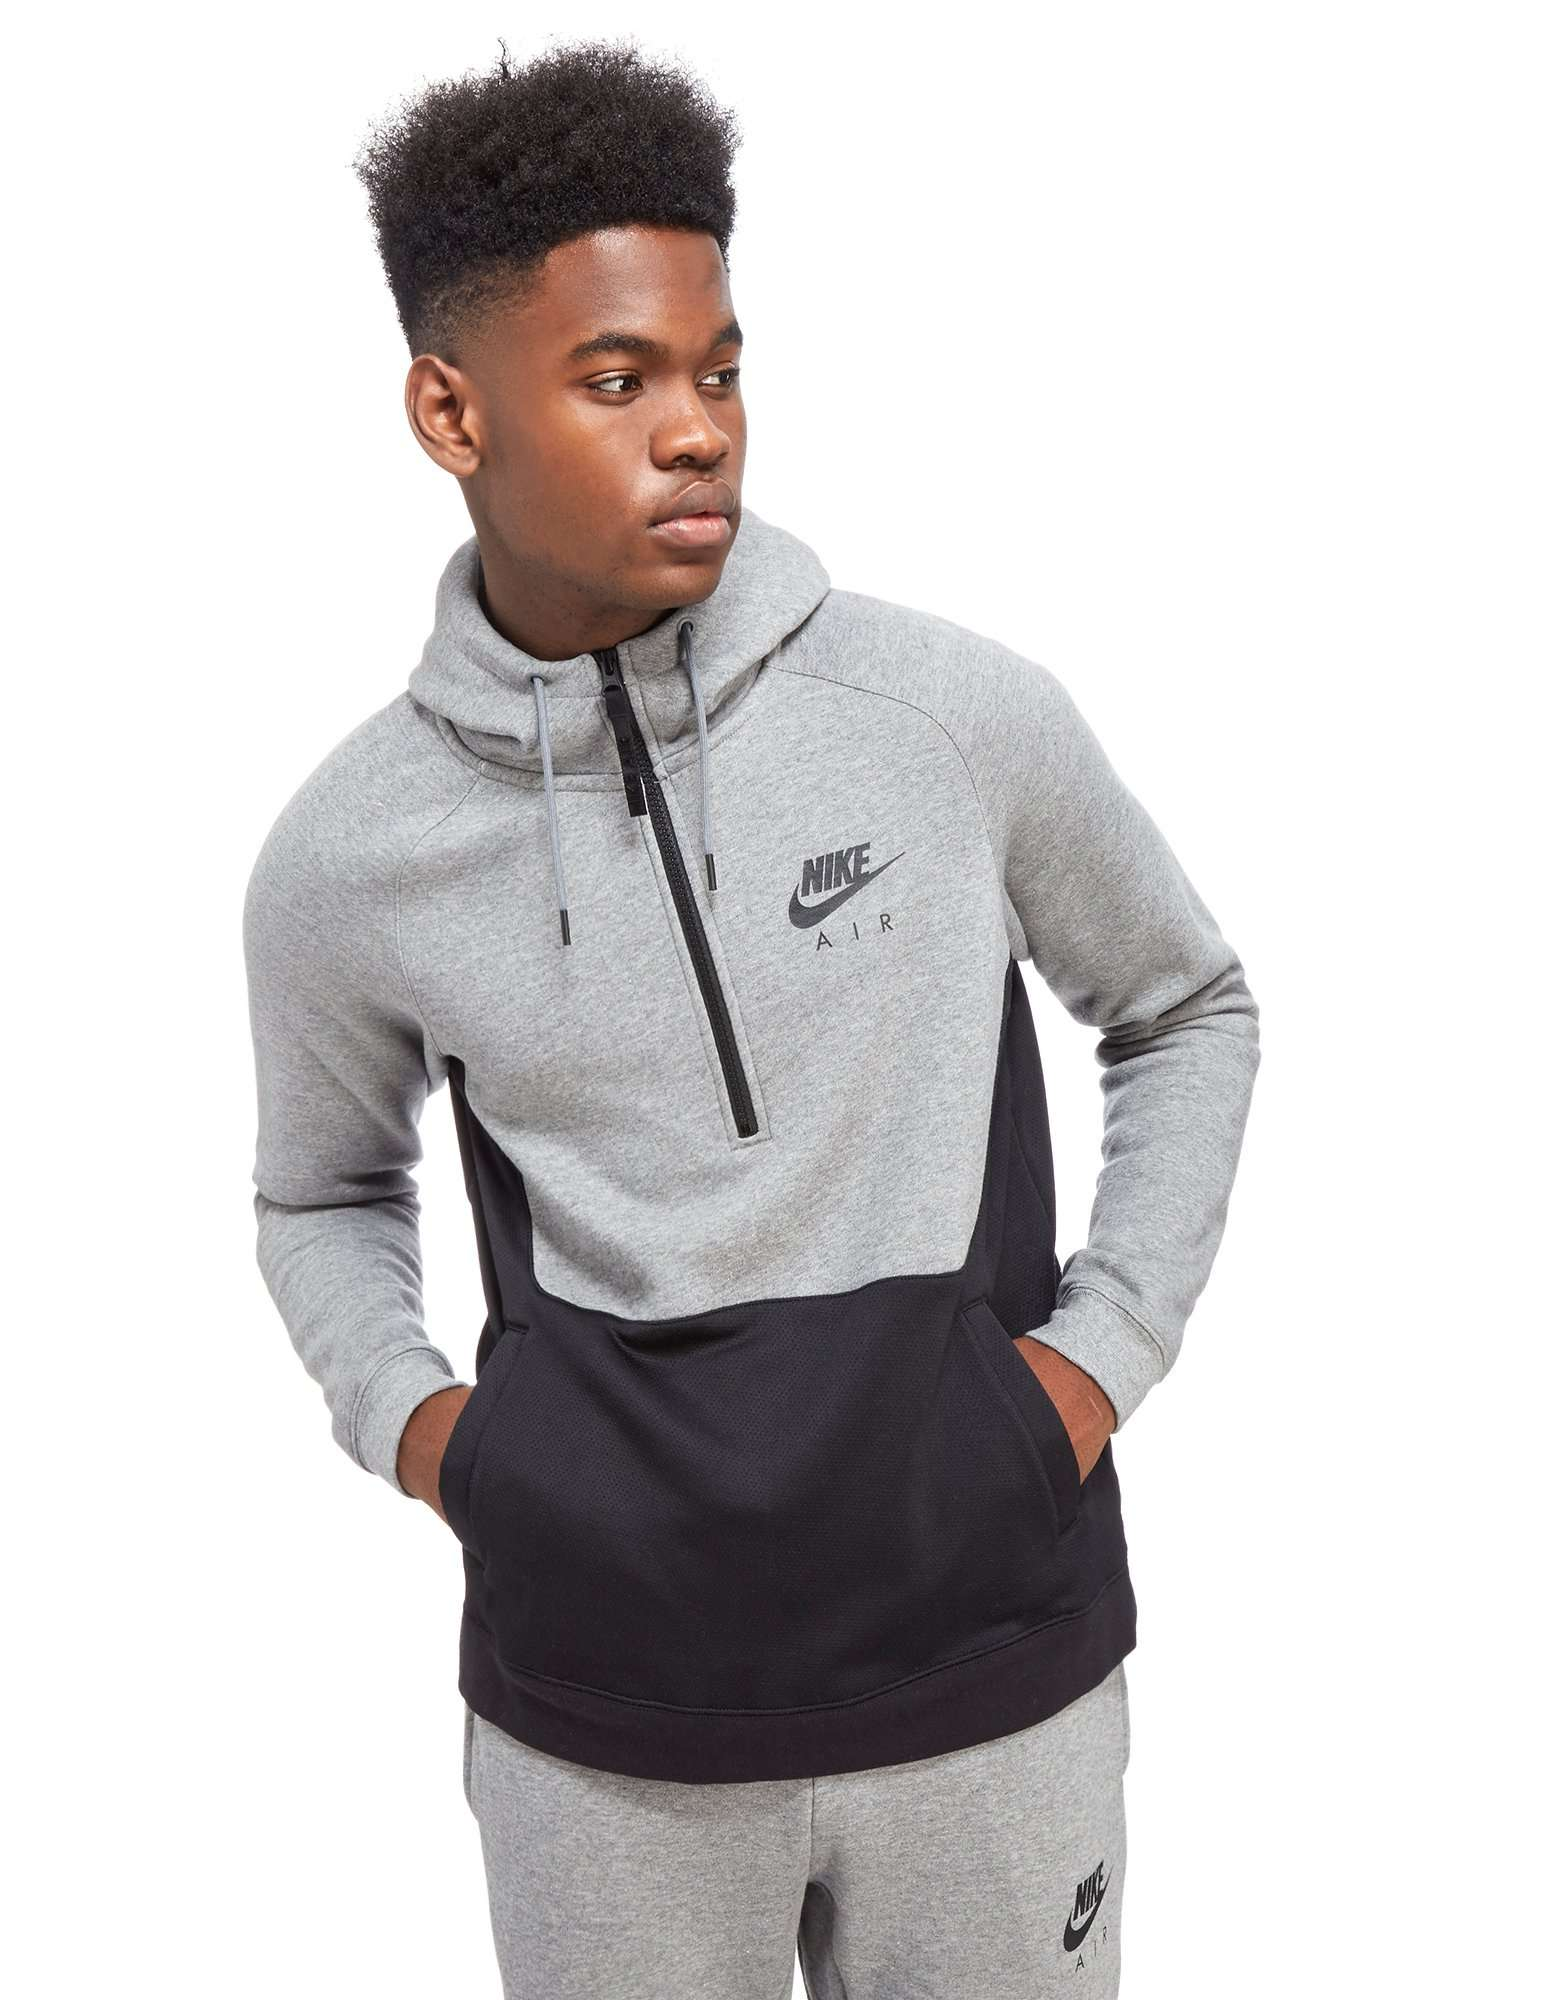 t shirt yves saint laurent femme - Men's Clothing   Hoodies, Polo Shirts & Tracksuits at JD Sports